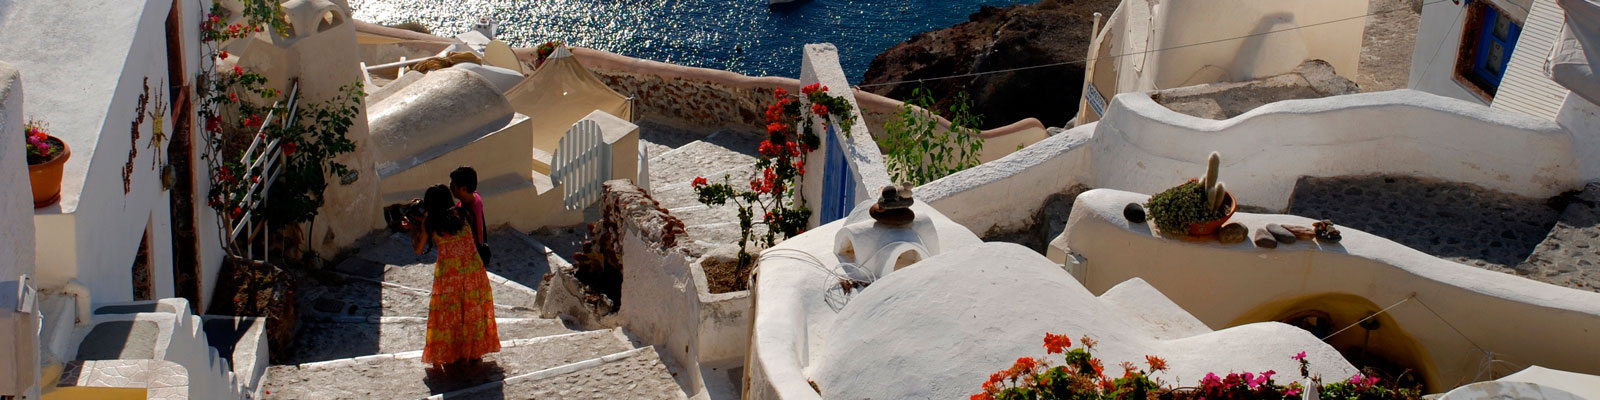 Greece Vegan Travel Guide - Santorini